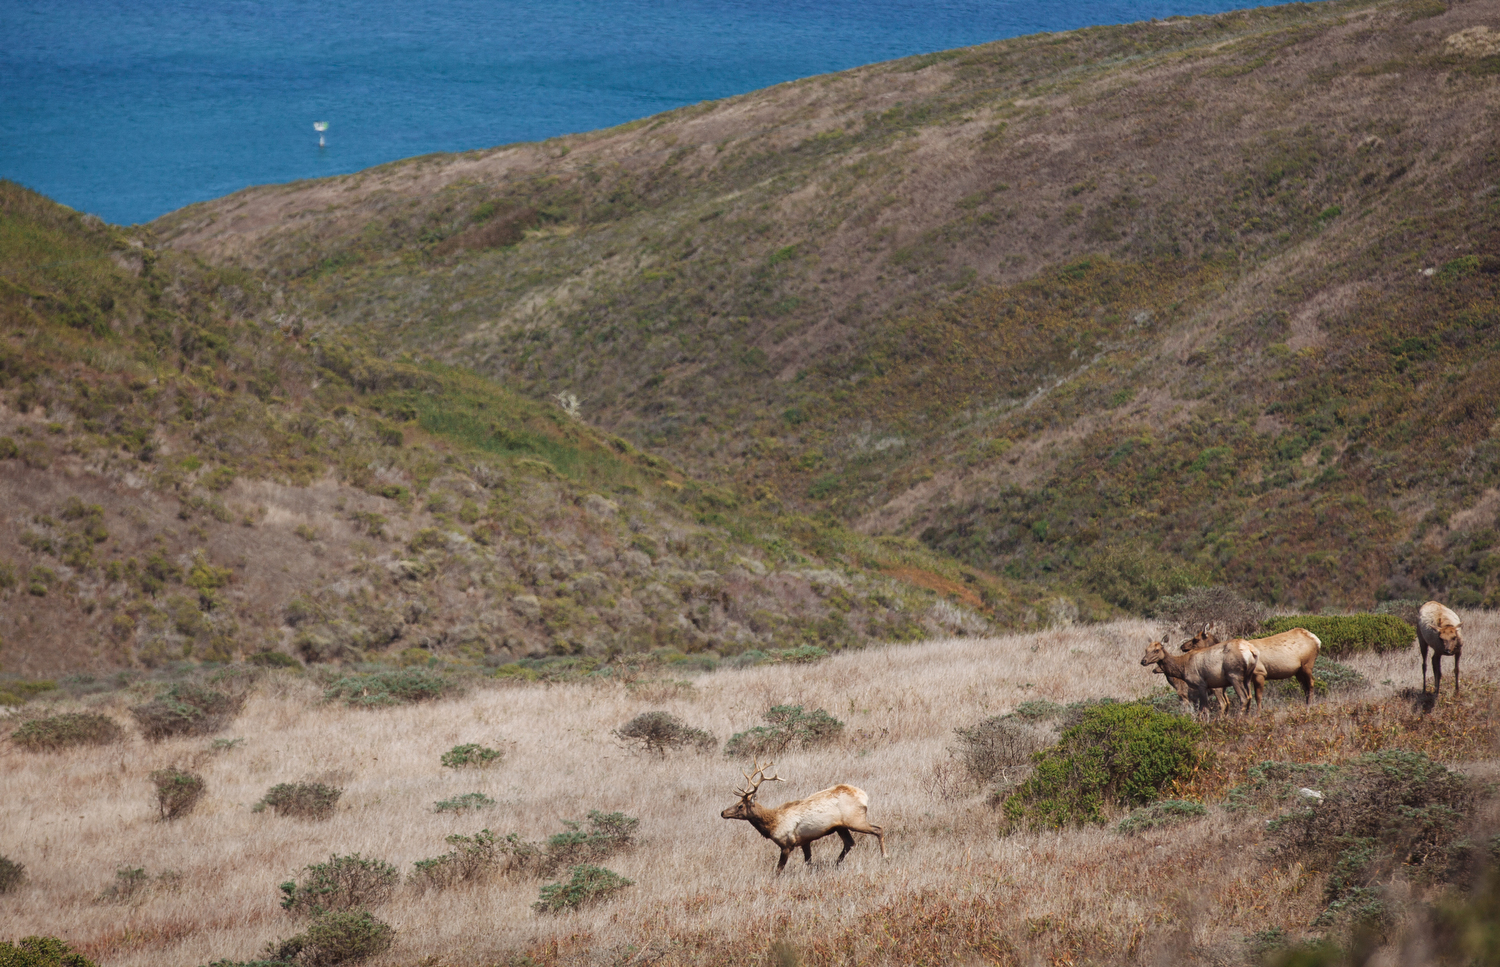 Elk at Point Reyes National Seashore.